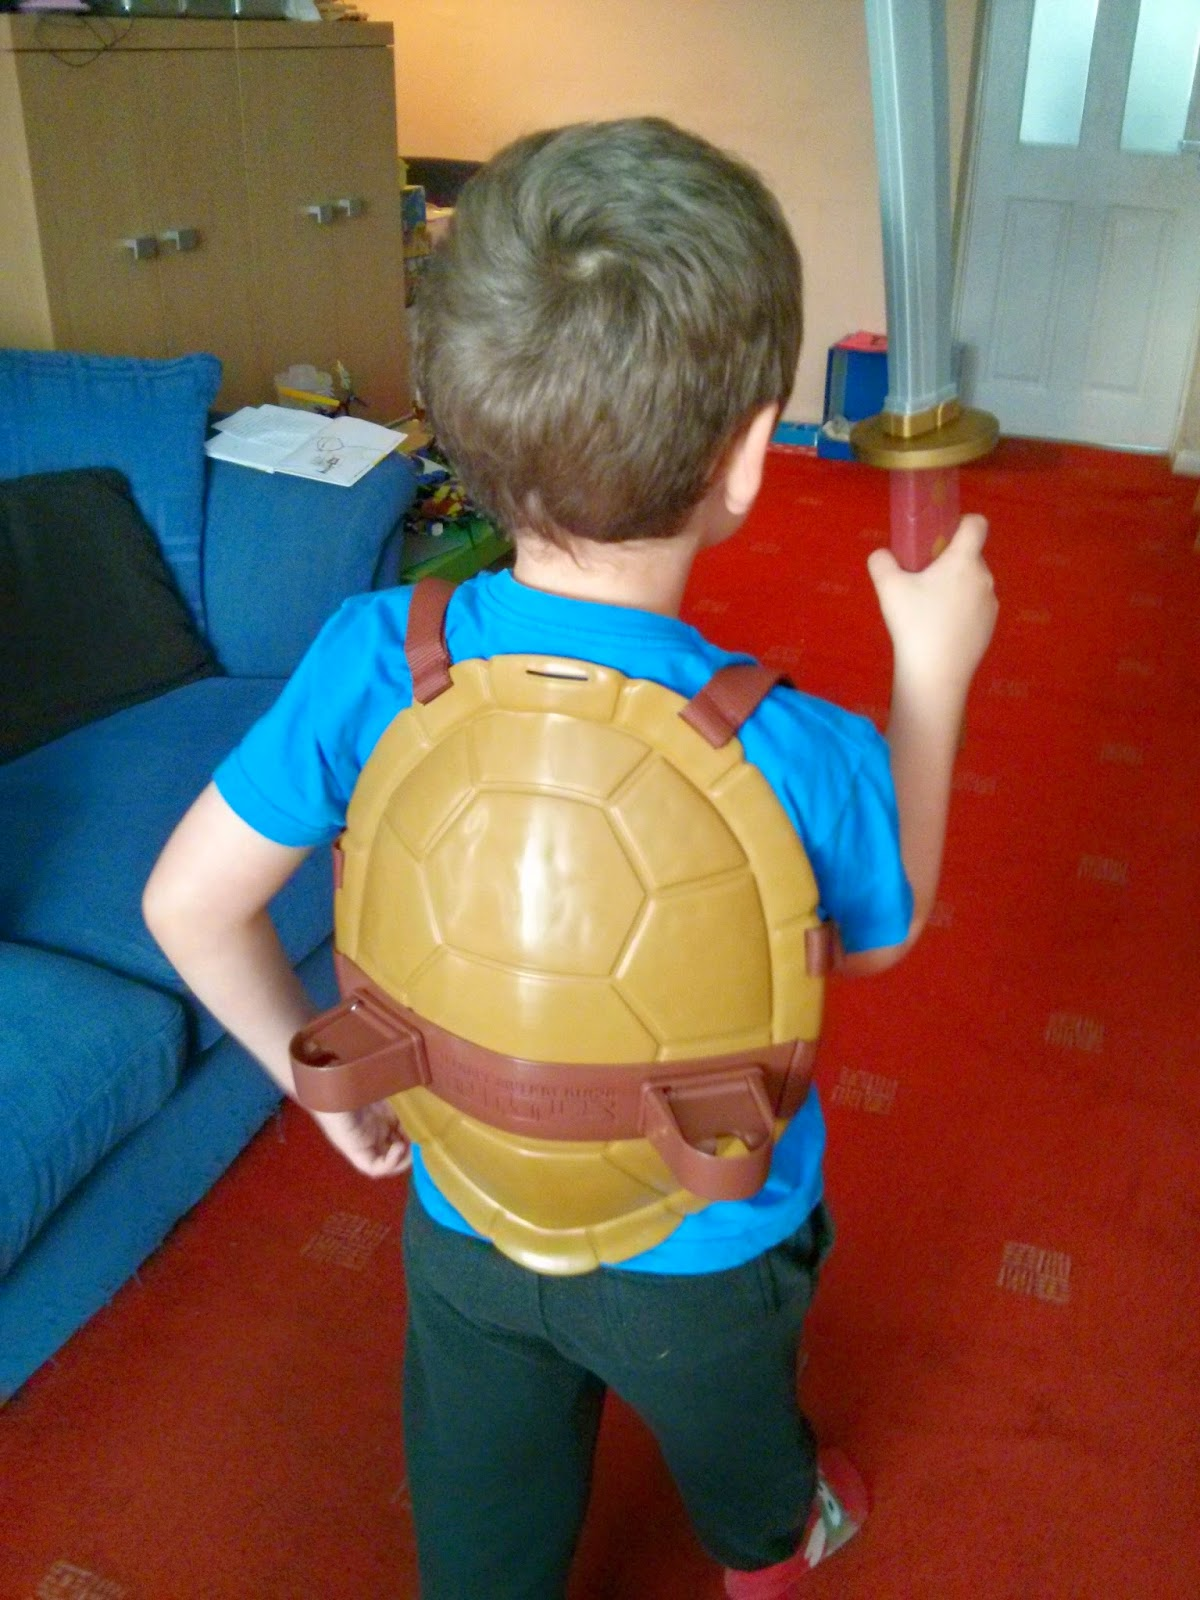 Big Boy Showing his Teenage Mutant Ninja Turtle Skills